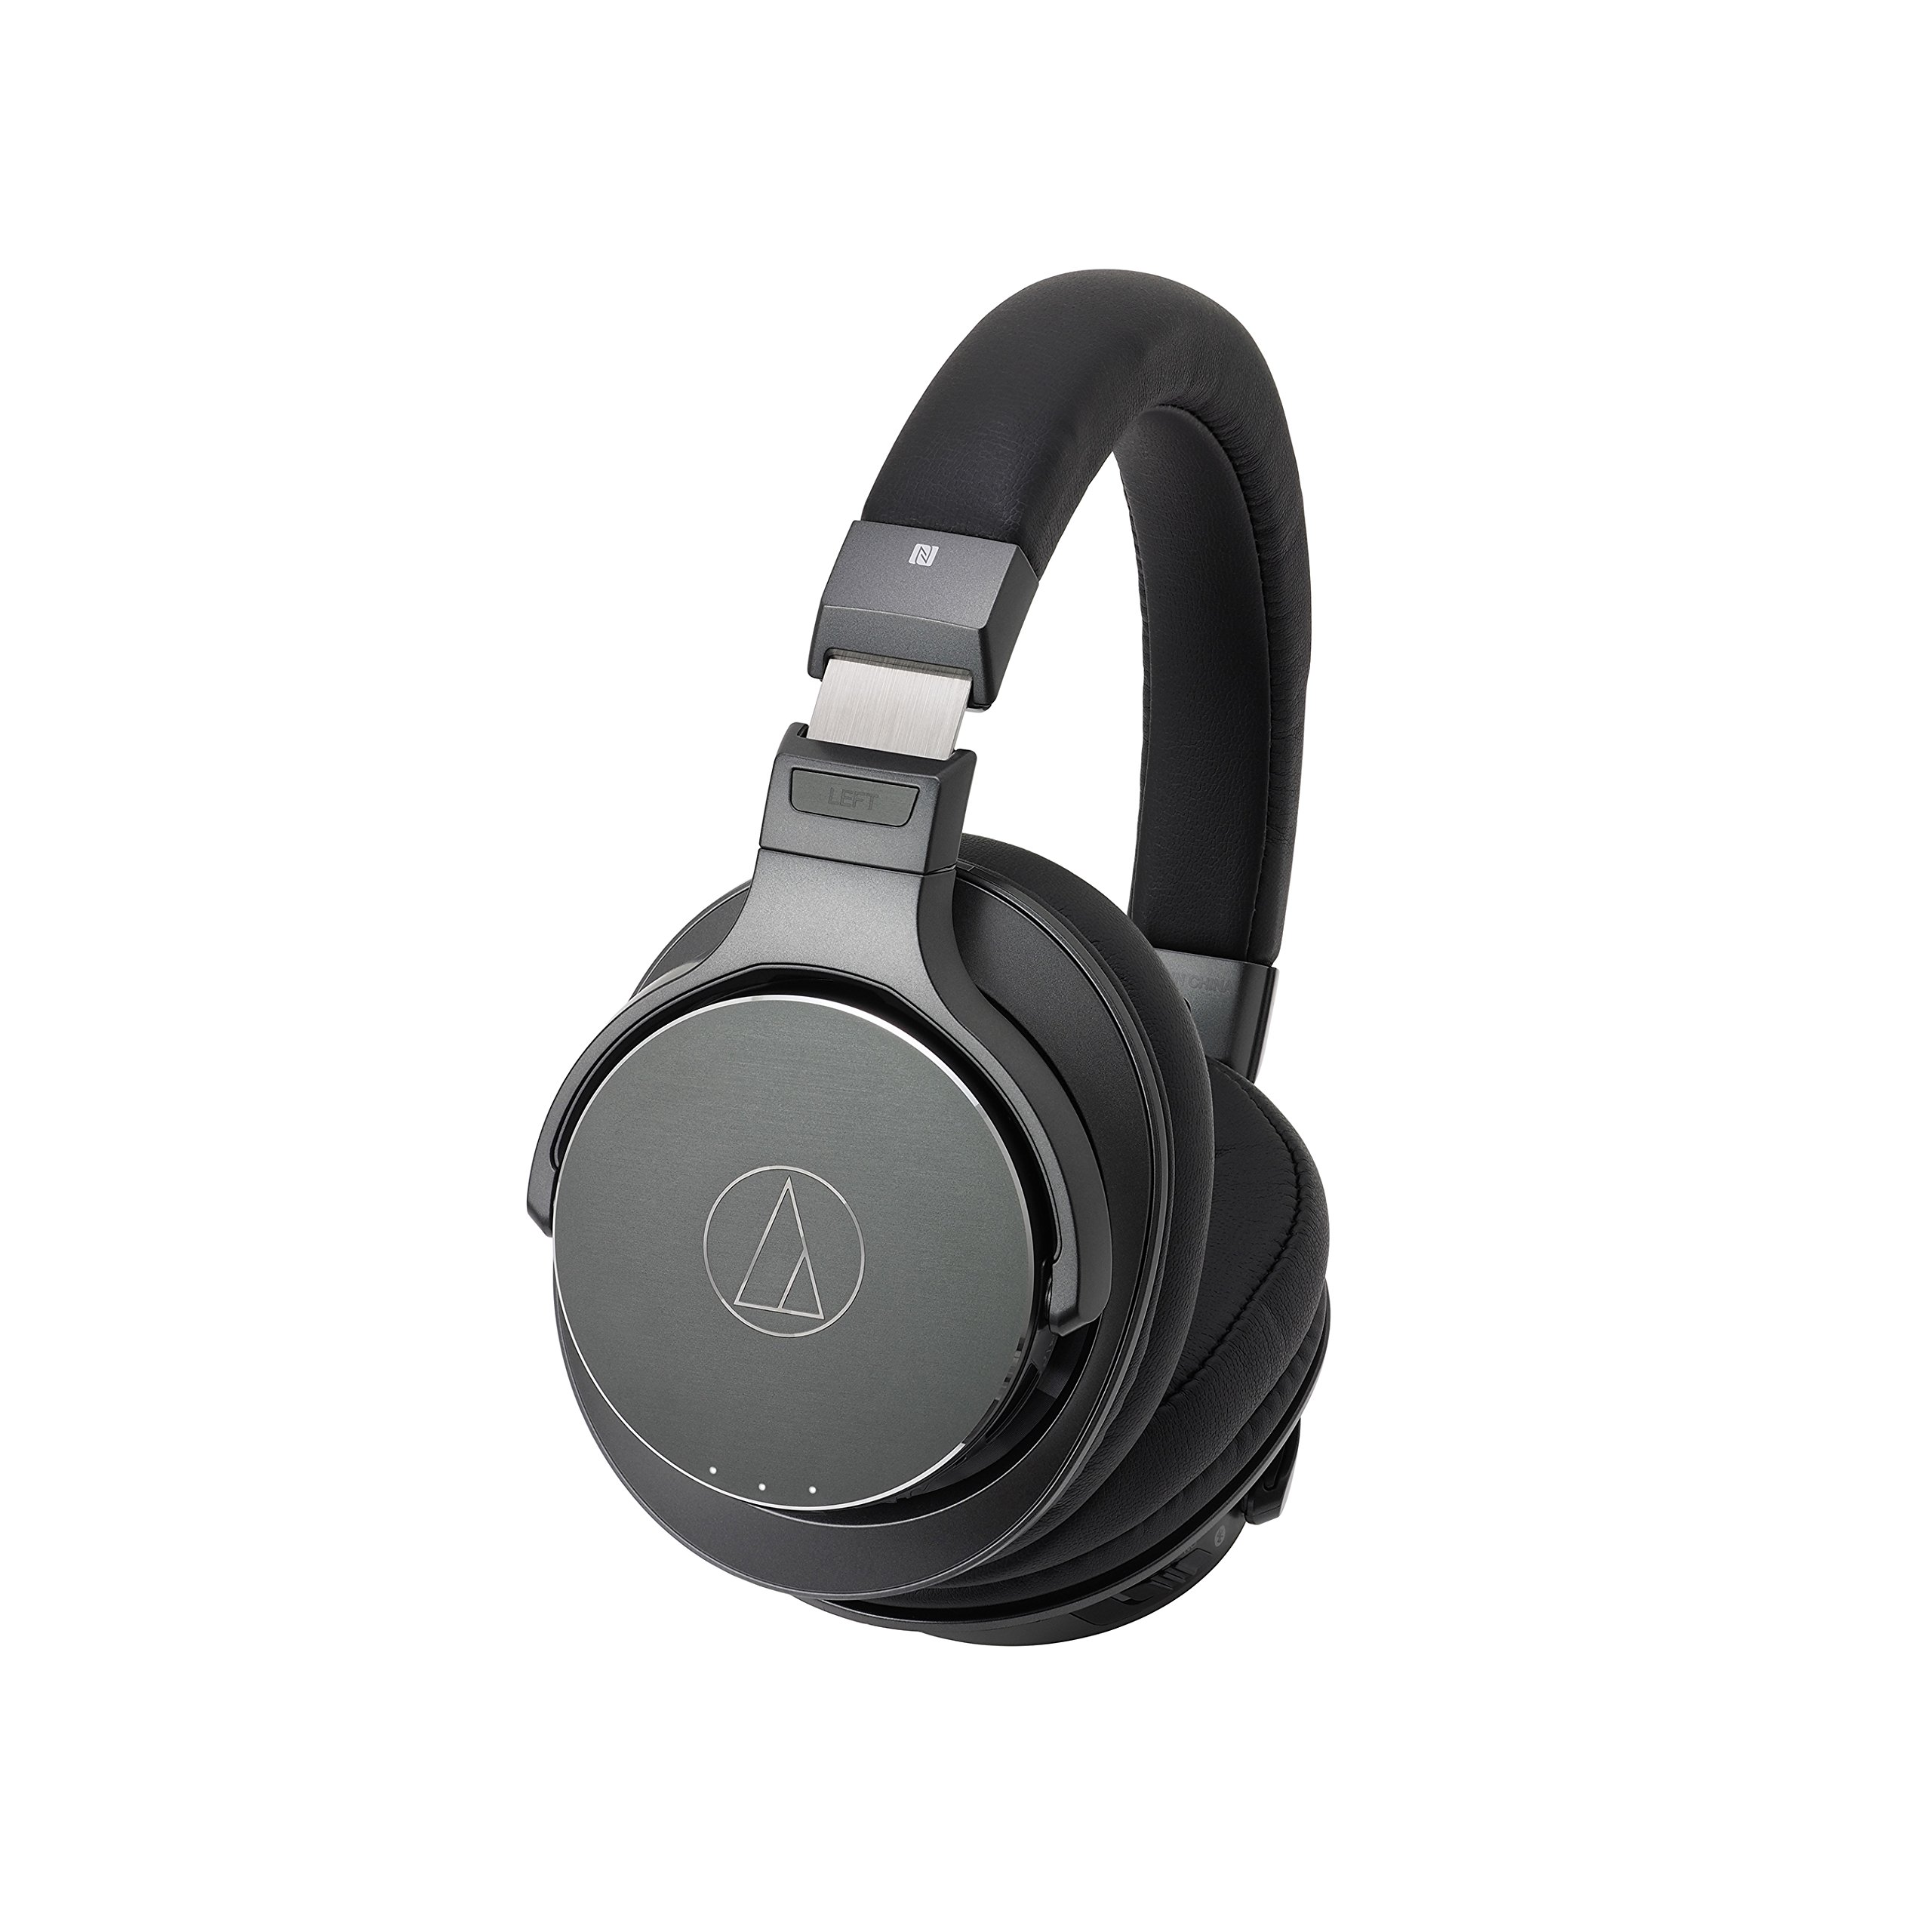 Audio-Technica ATH-DSR7BT Wireless Over-Ear Headphones with Pure Digital Drive by Audio-Technica